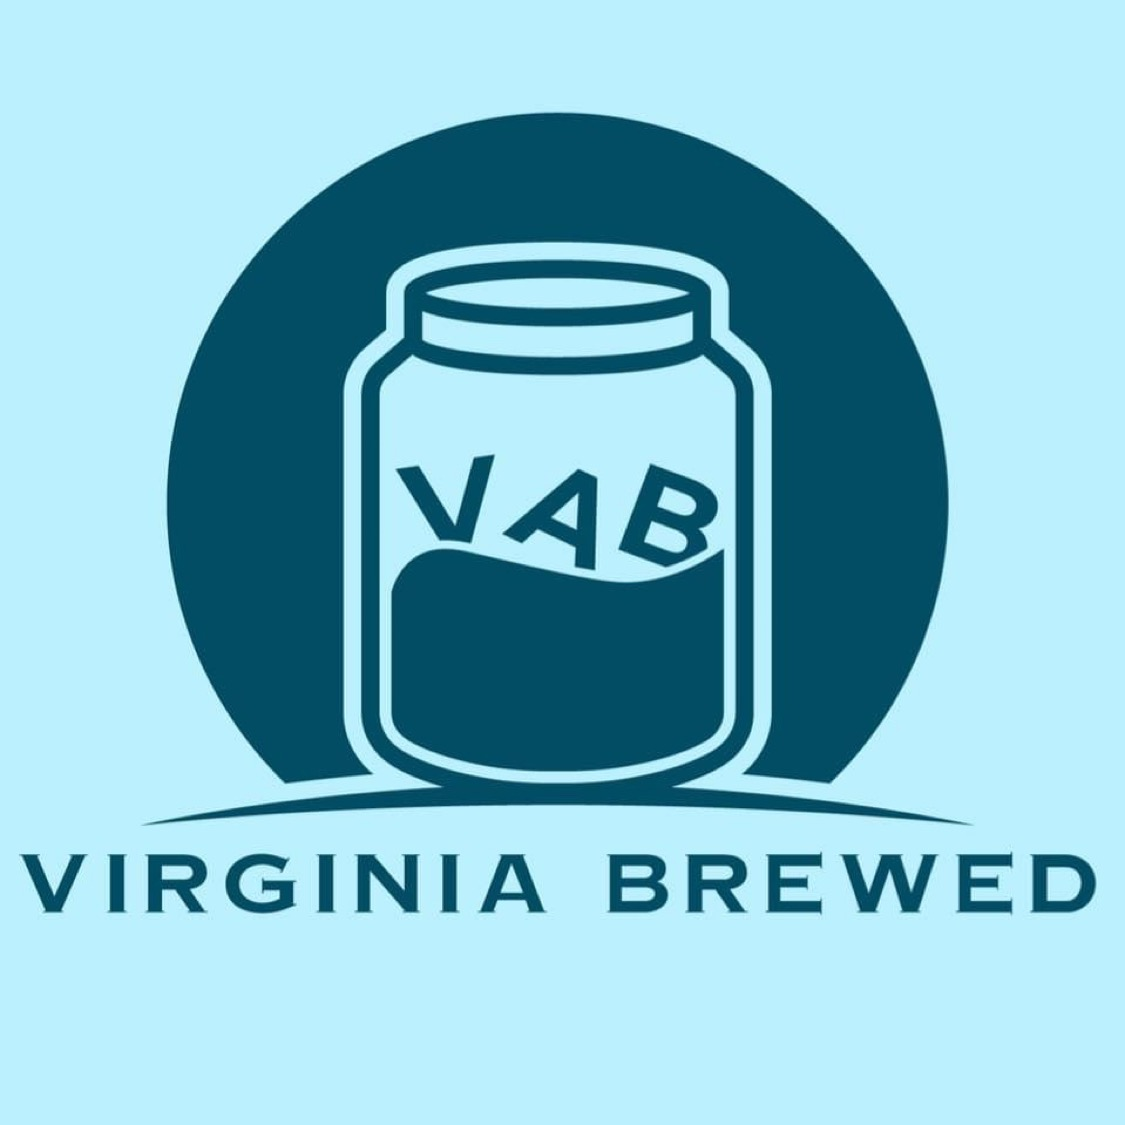 JrocVA Pledges To Help Local Virginia Artists Grow Under His Label, 'Virginia Brewed'